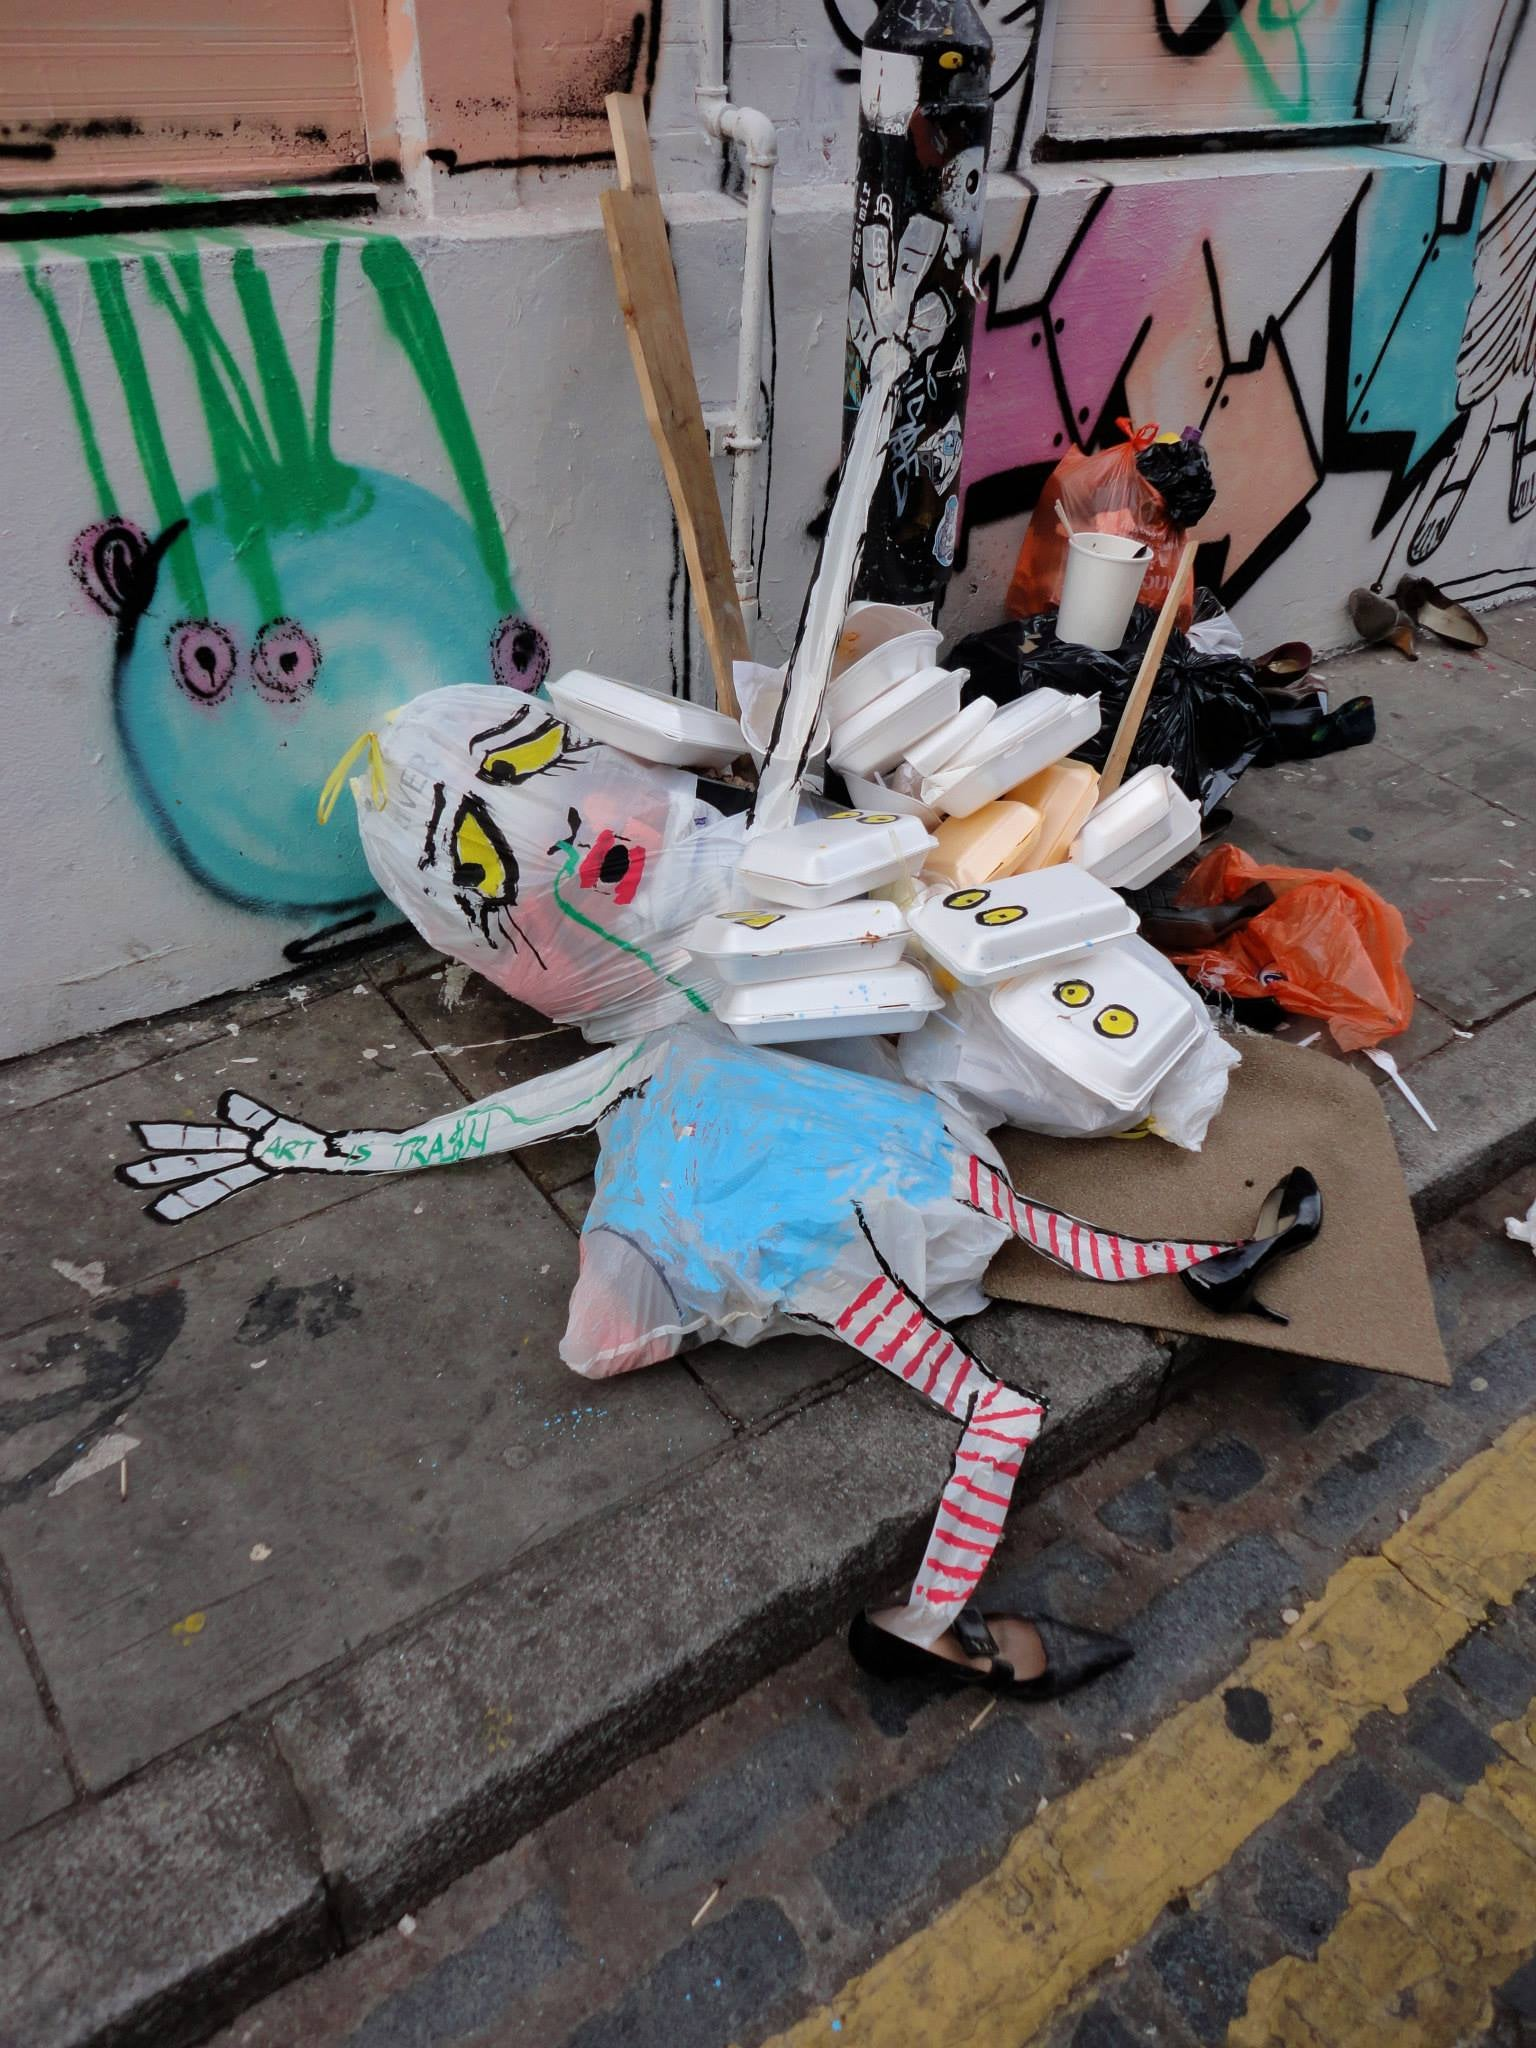 Francisco de Pajaro: Meet the street artist proving modern art isn't a load of trash